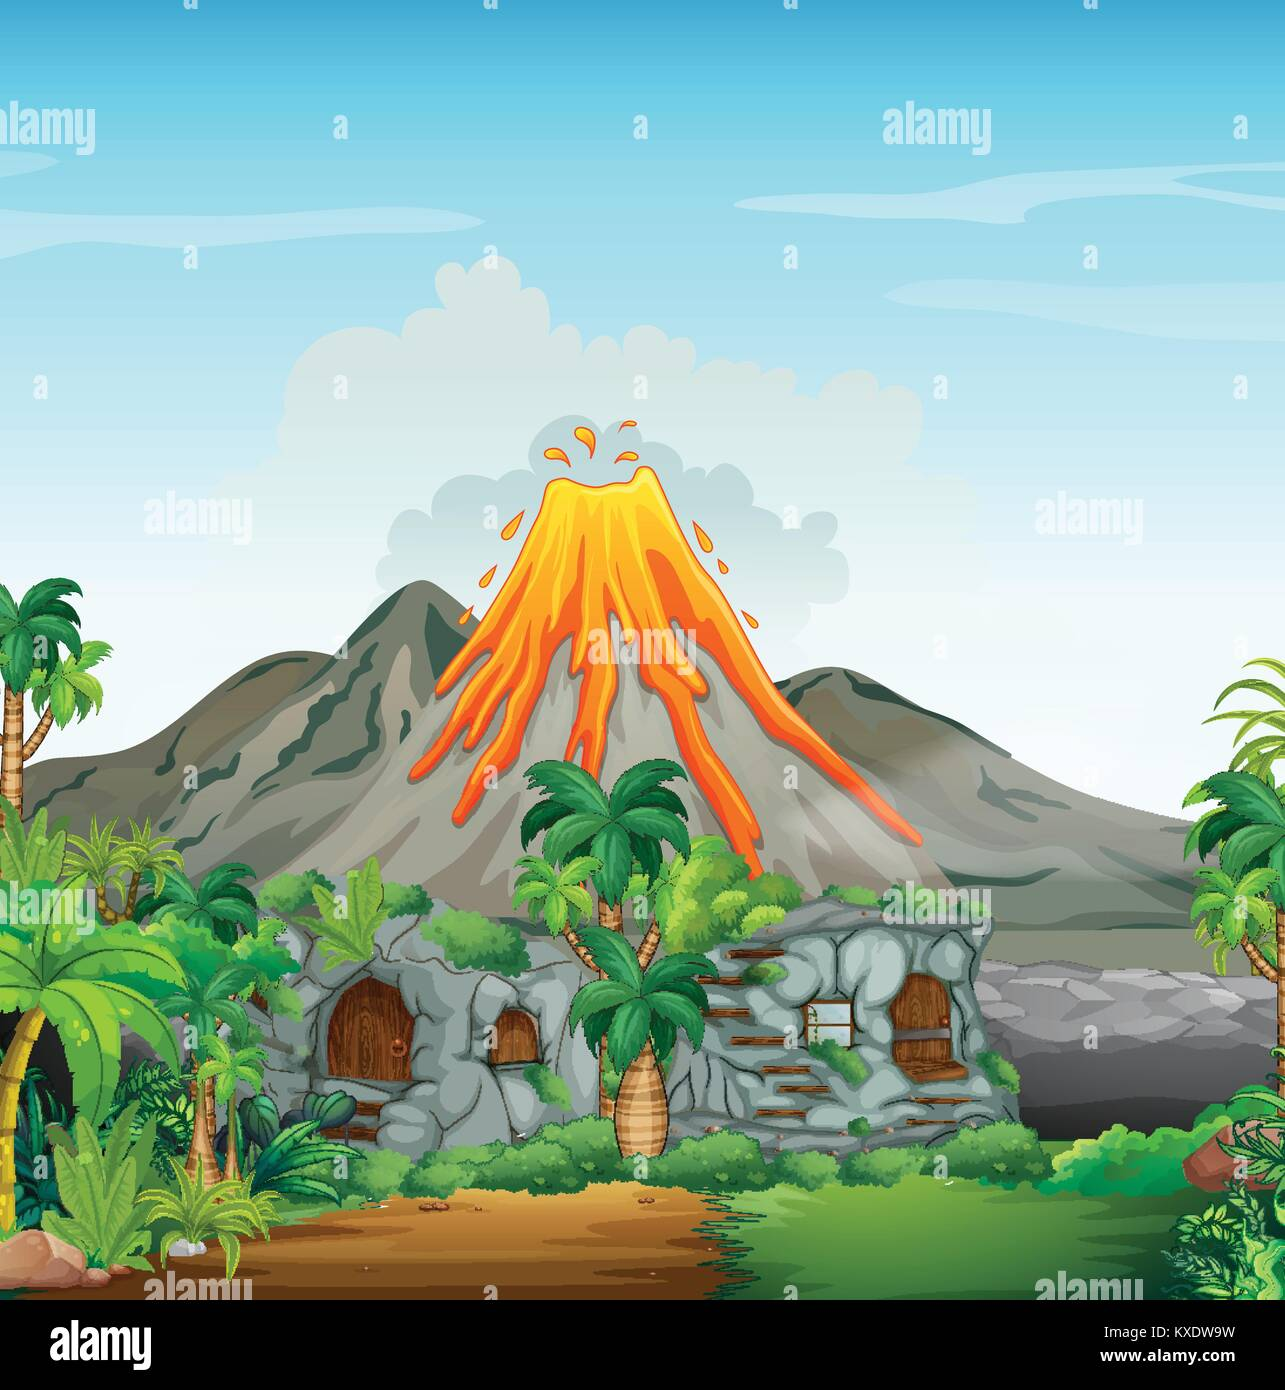 Scene with volcano and cavehouse illustration - Stock Vector